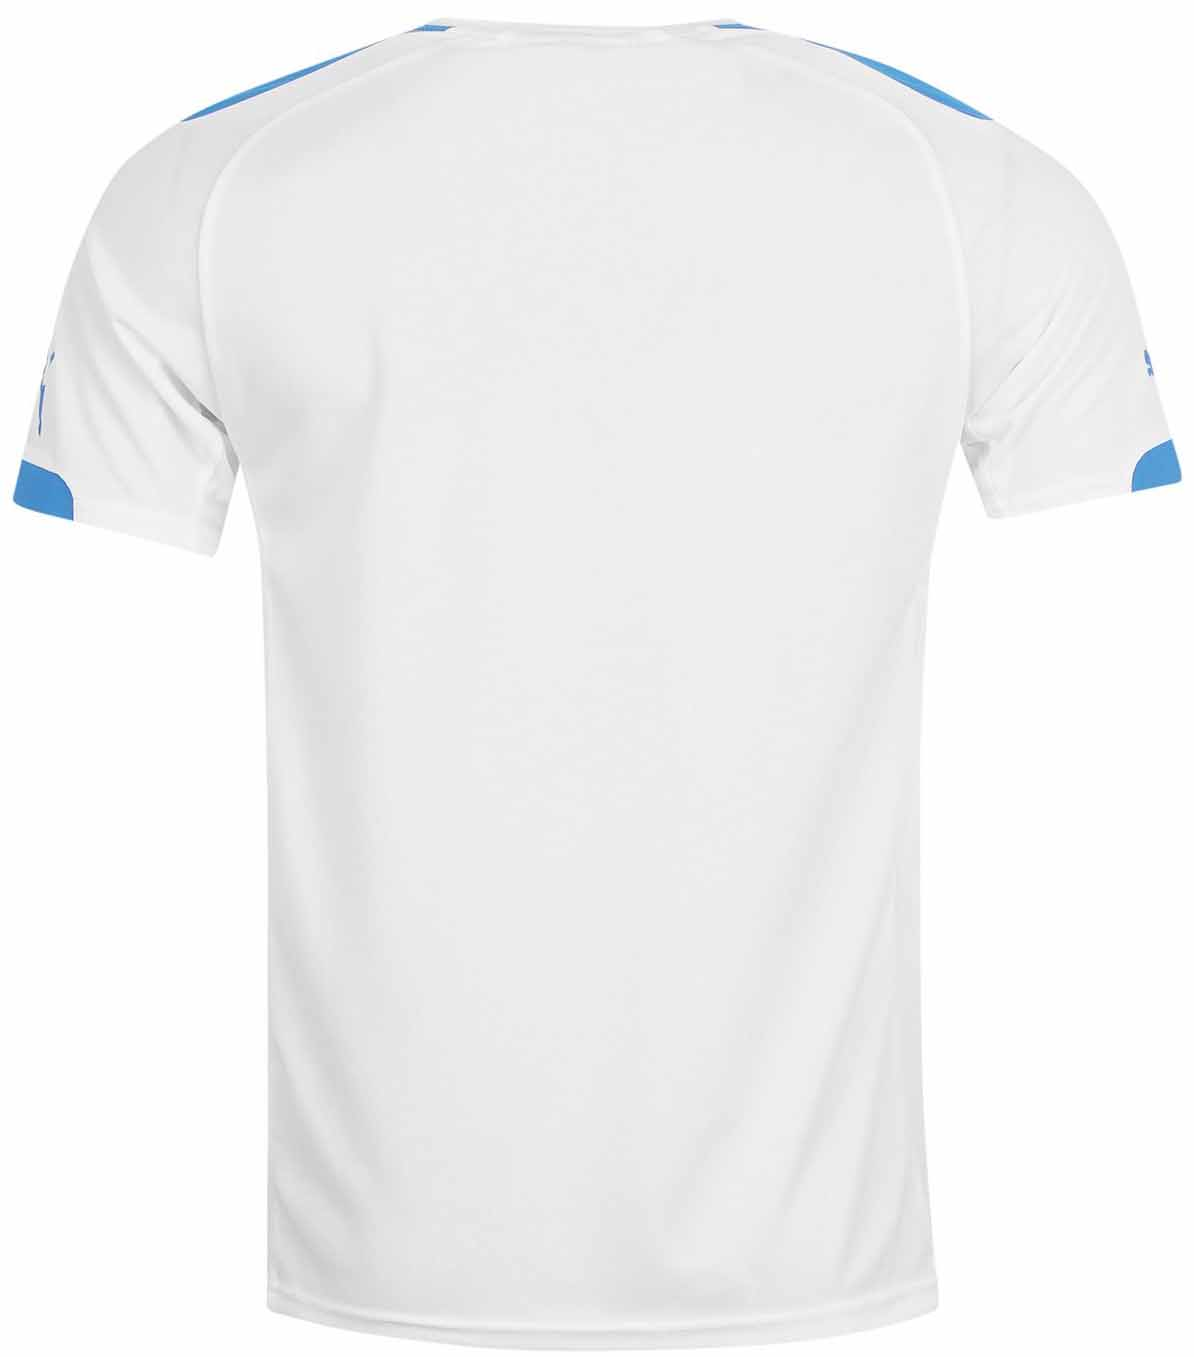 a46790f35b2 The white Glasgow Rangers 2014-15 Away Shirt has blue accents in the  shoulder area and the sleeve cuffs, while there are red lines on both sides.